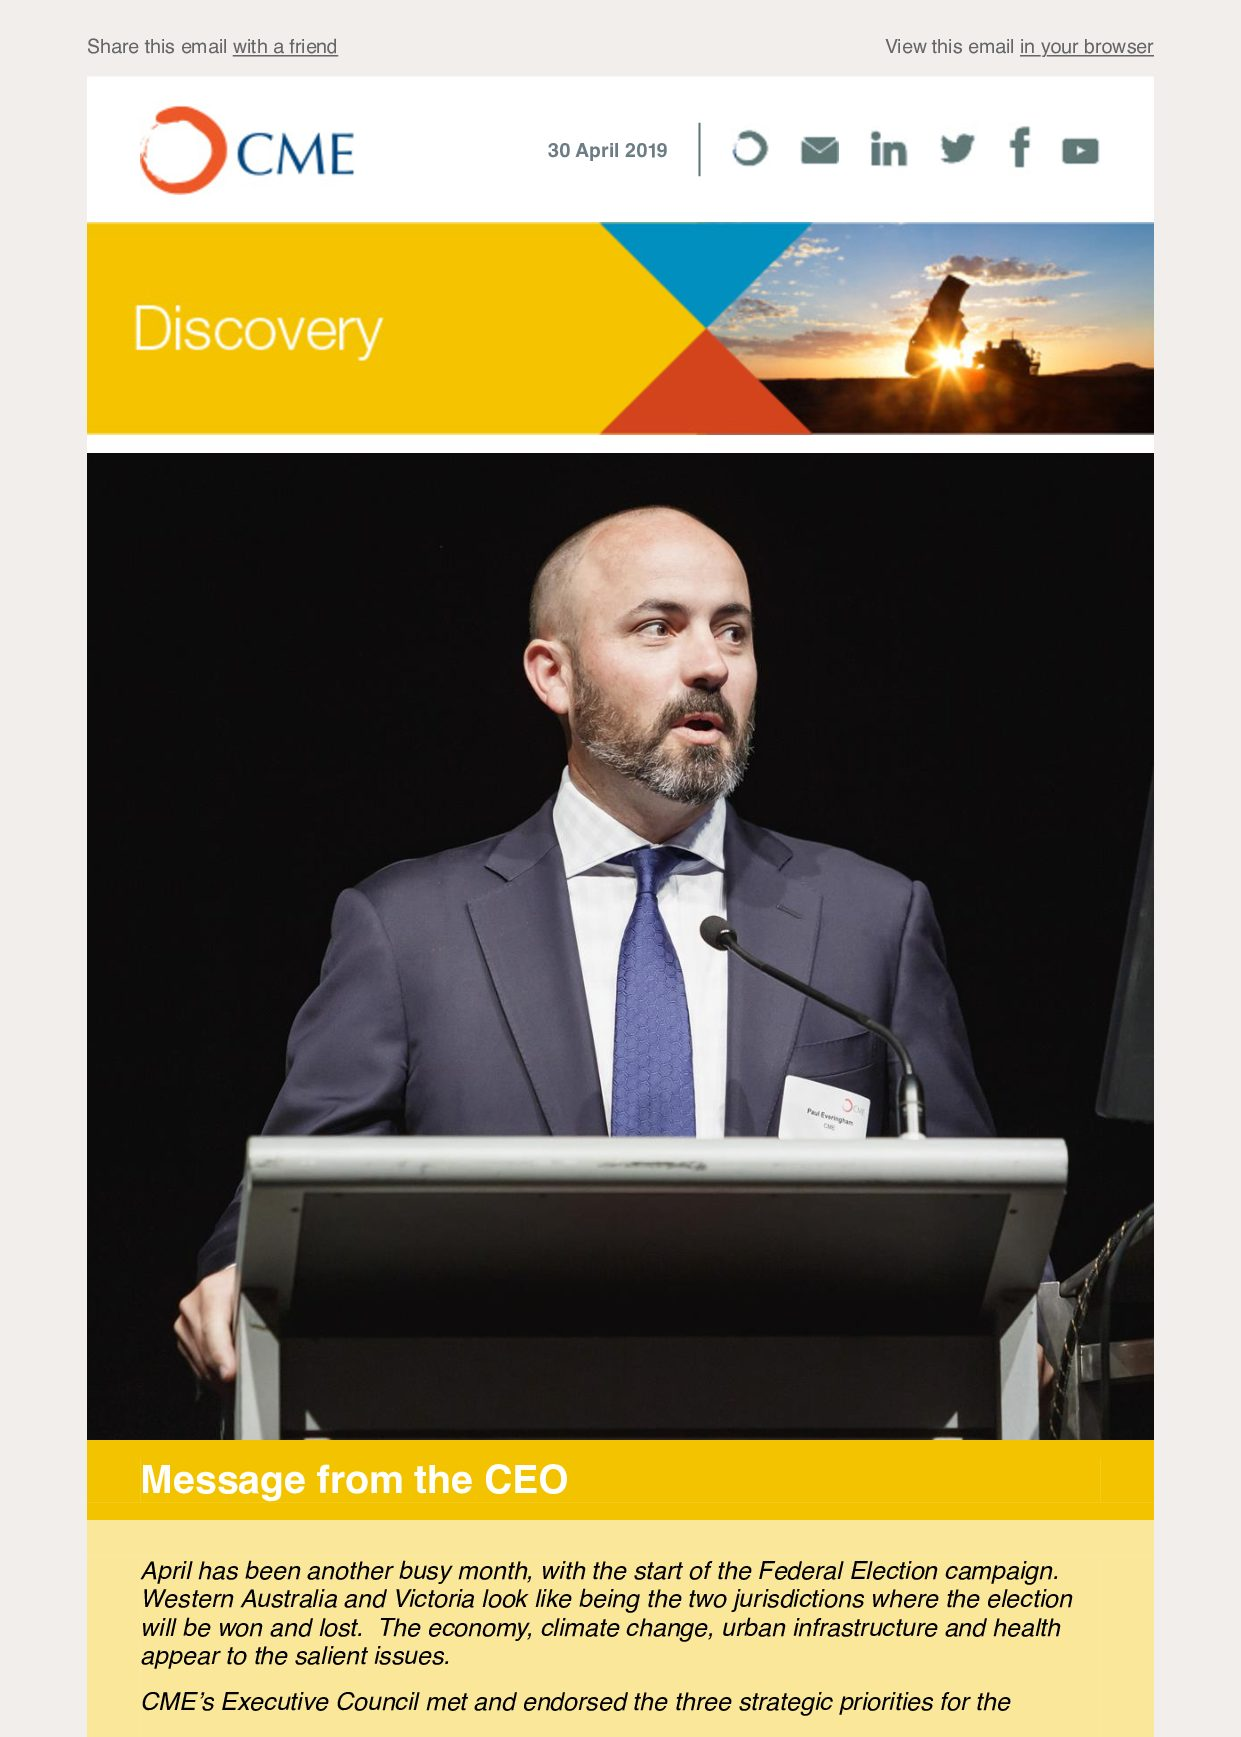 CME Discovery April 2019